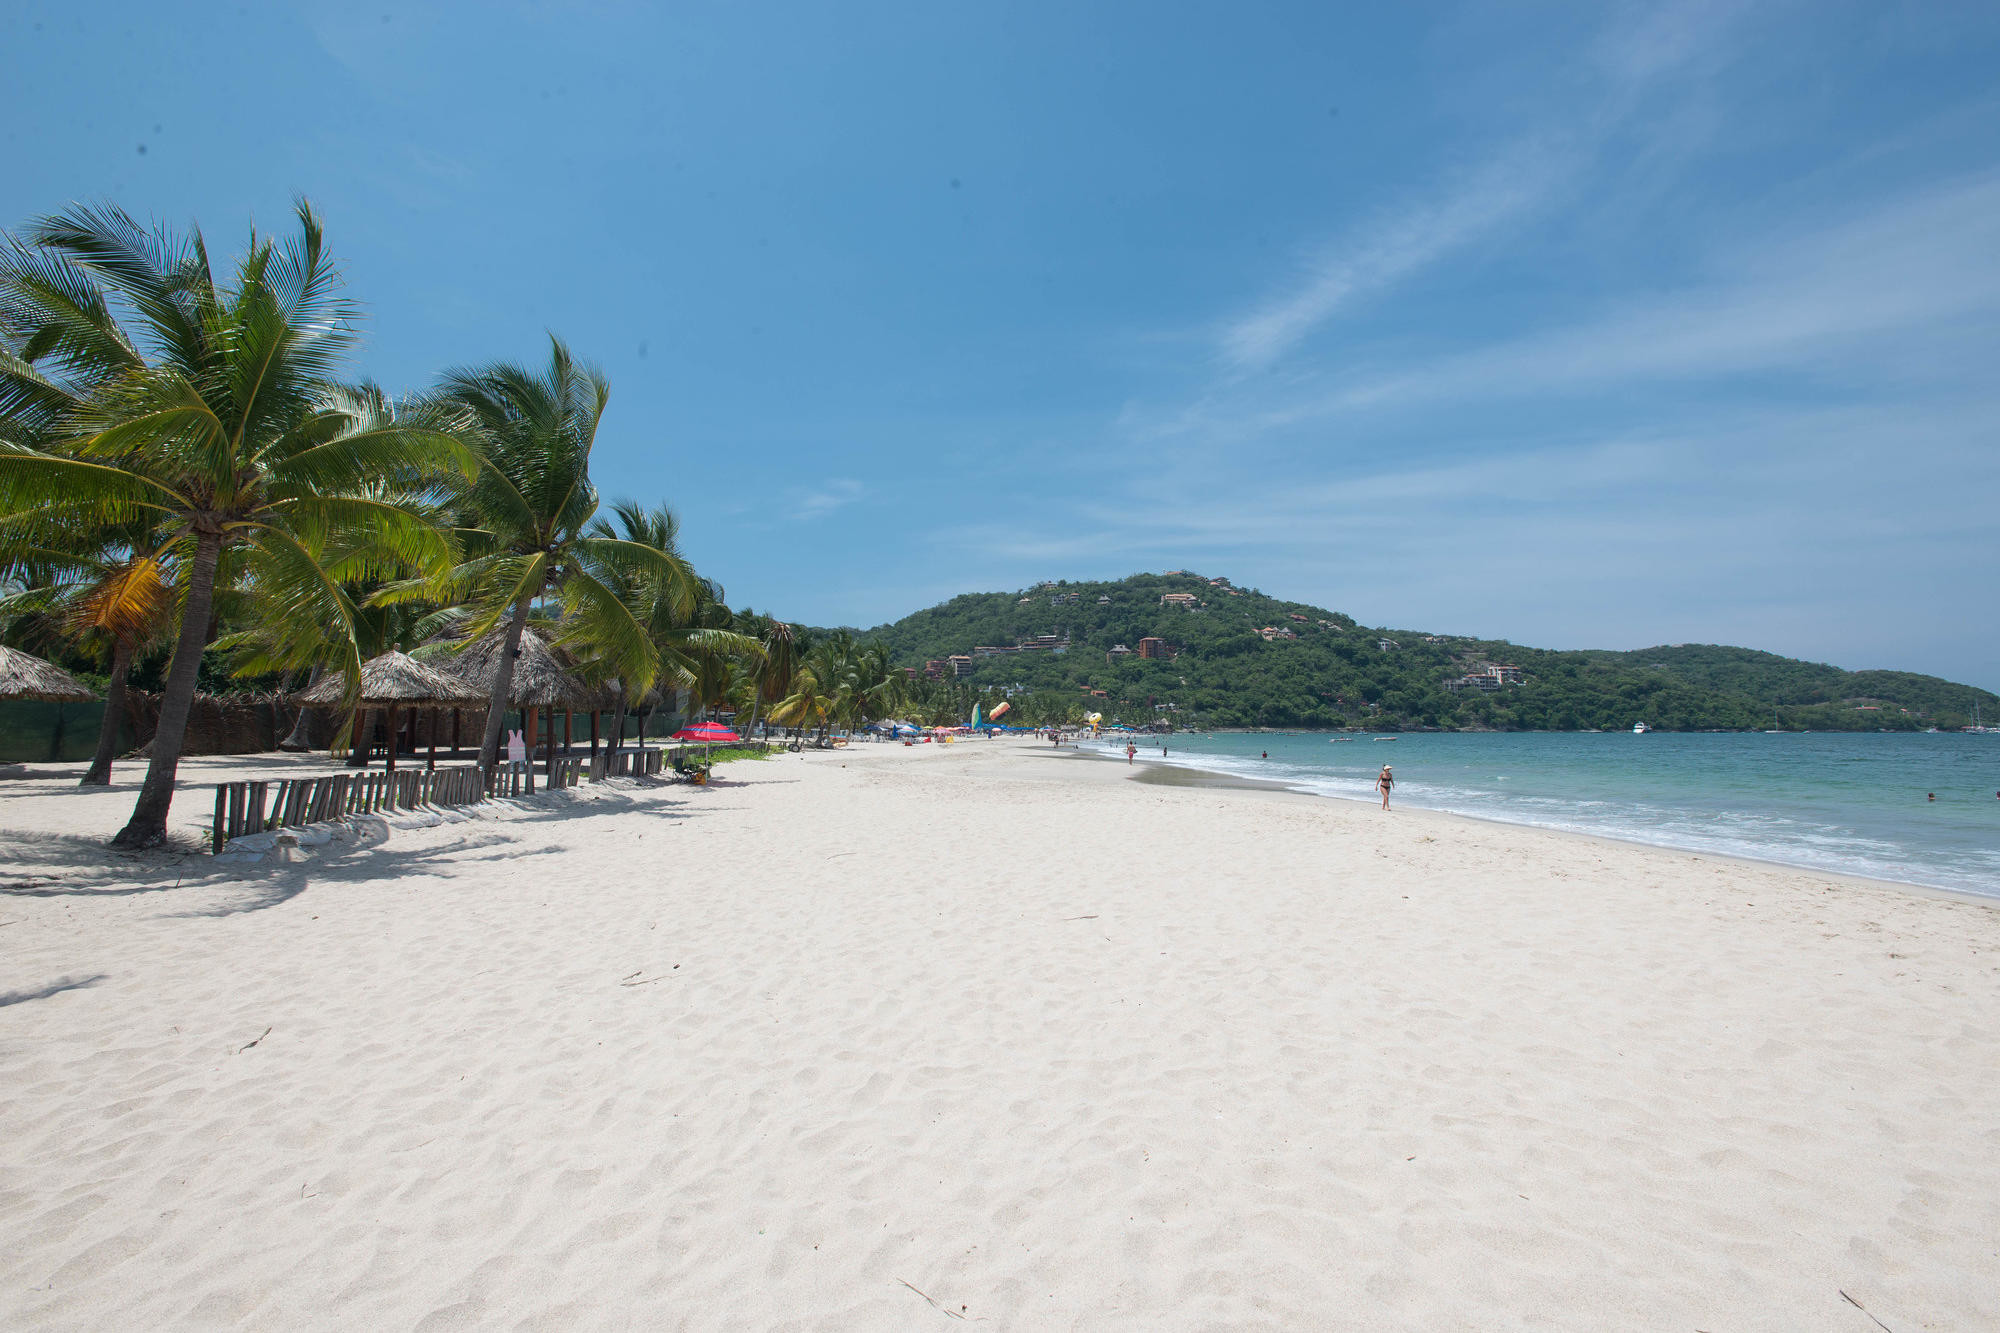 The beach in Zihuantanejo/Oyster